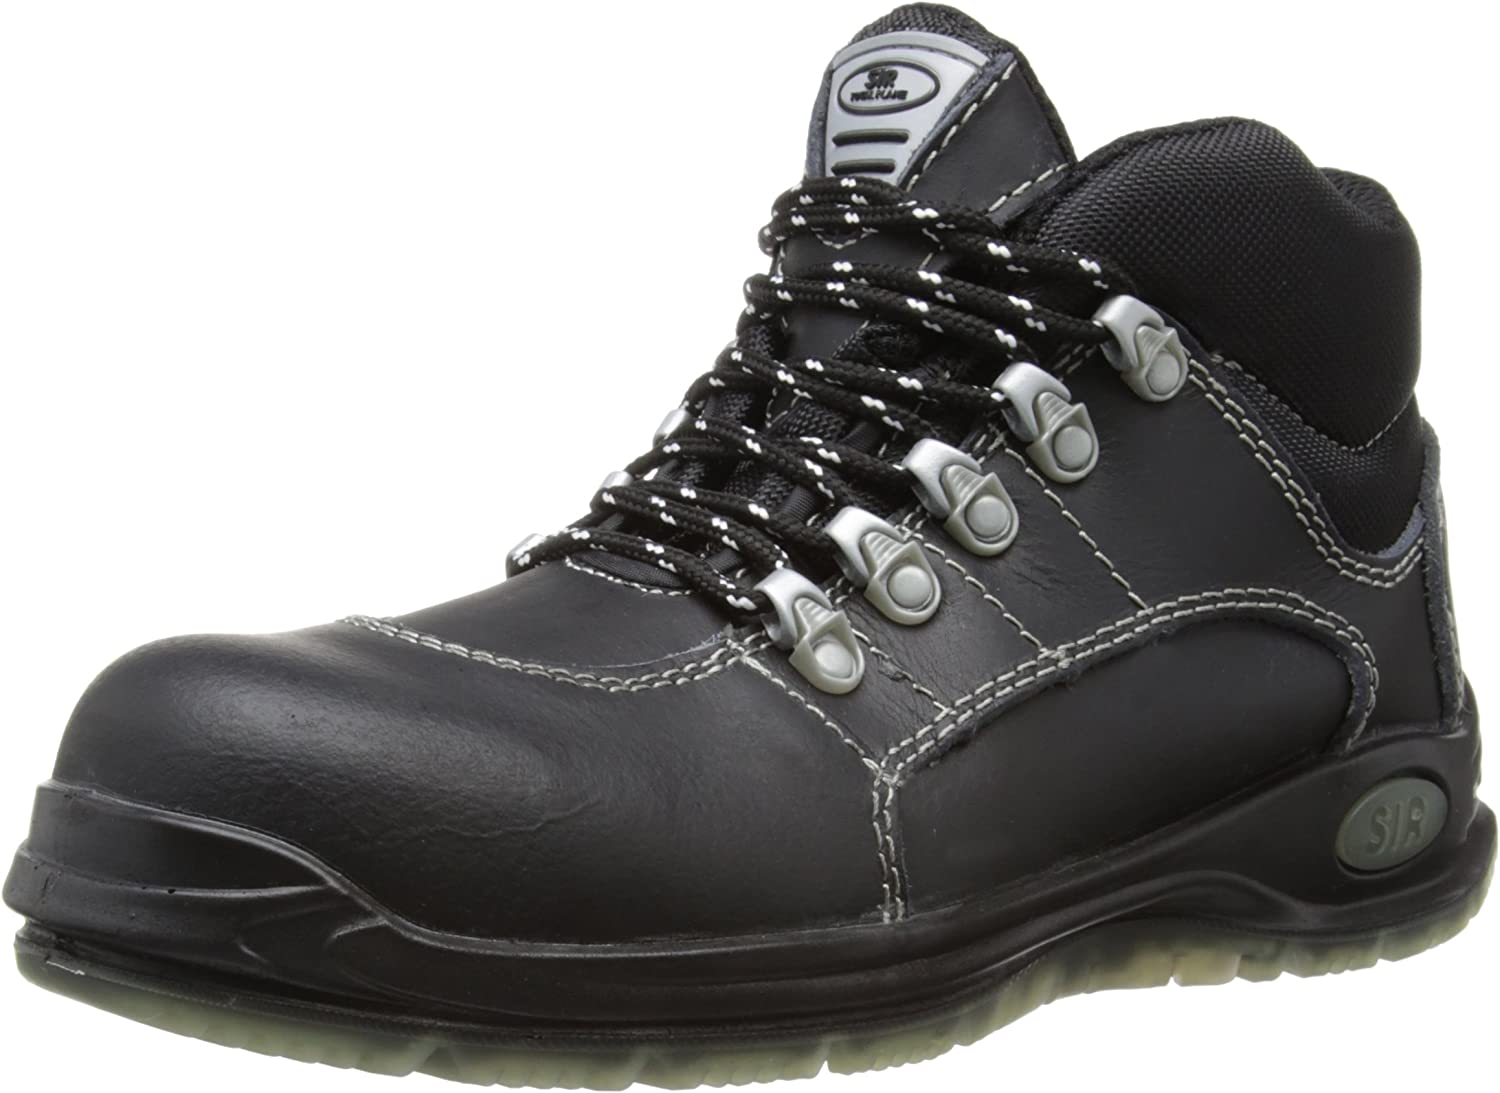 SIR Safety Unisex-Adult Platinum High shoes Safety Boots 22034 Black 7 UK, 41 EU